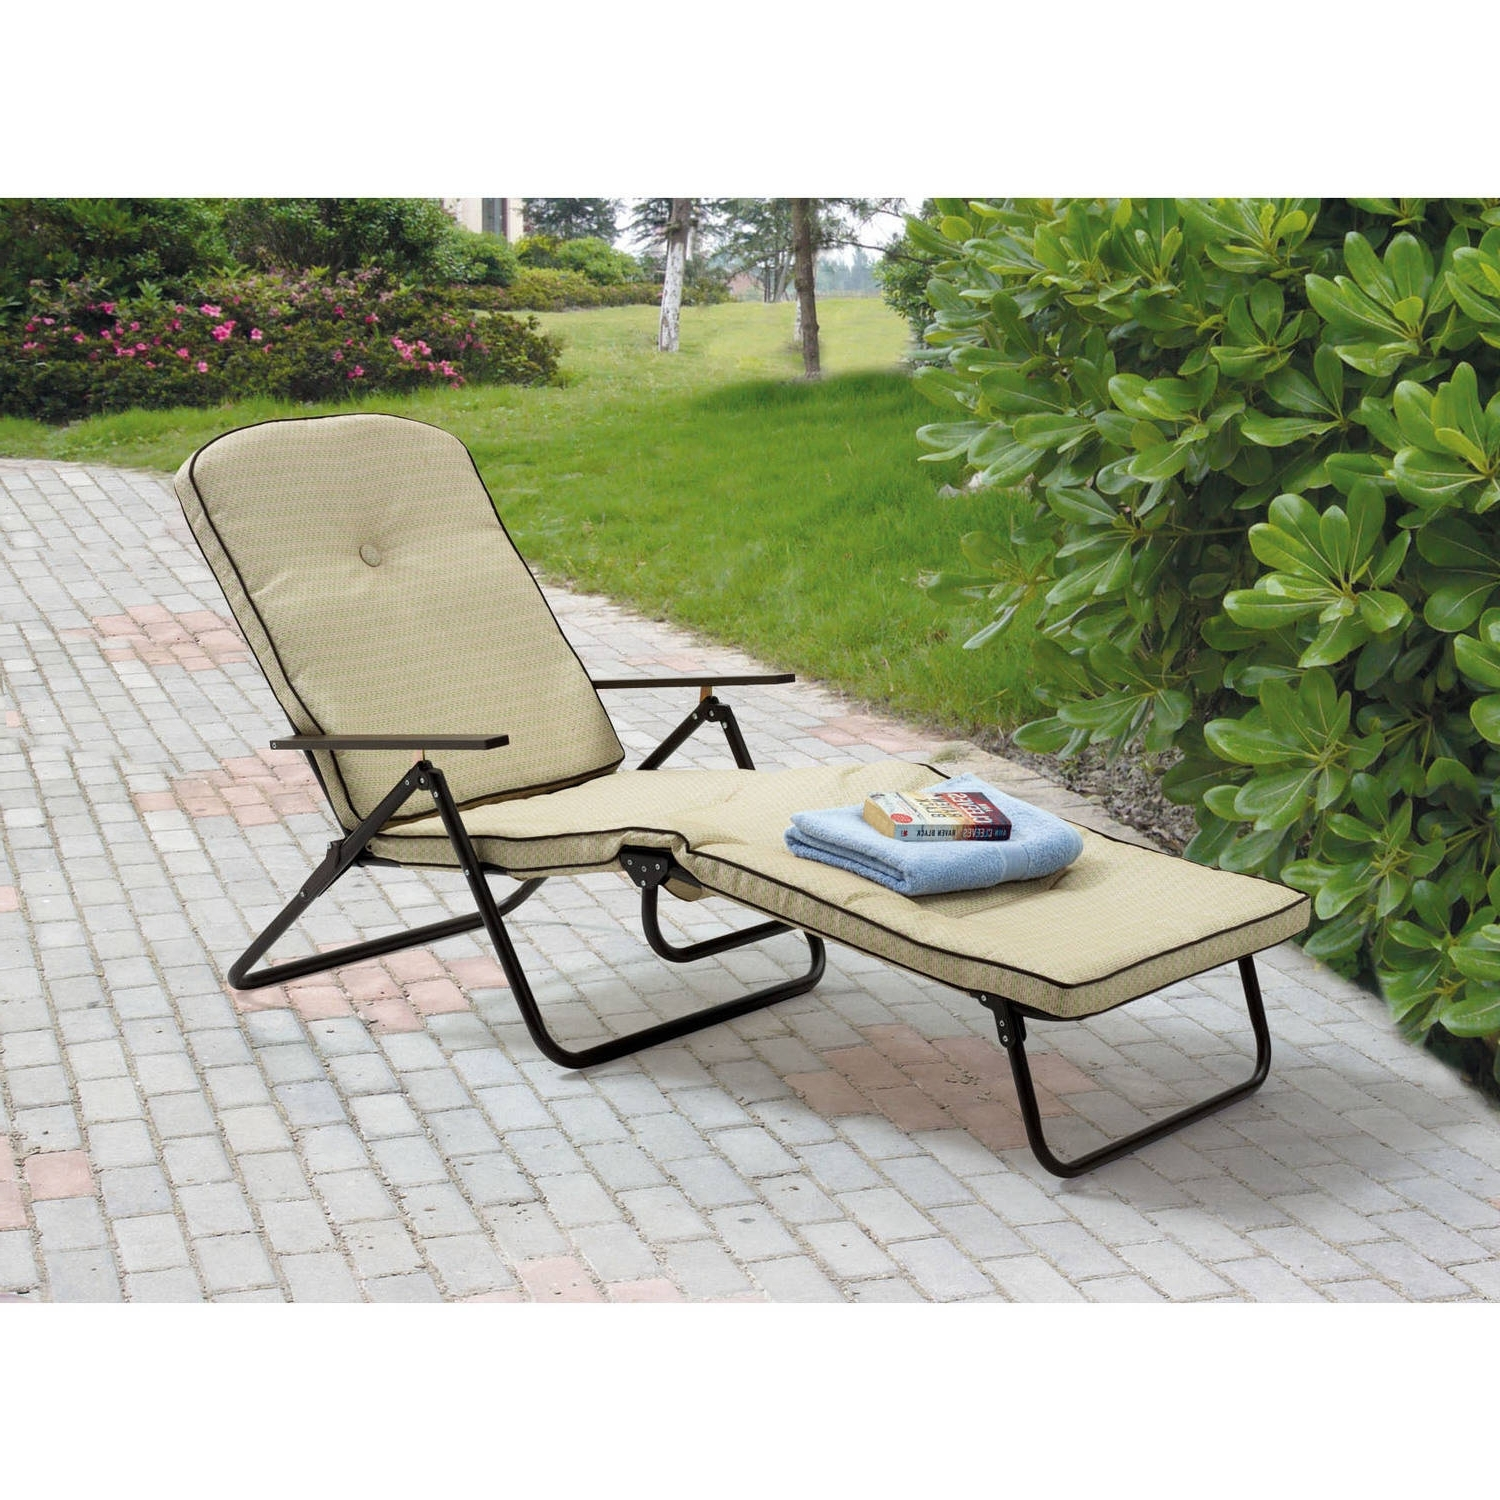 Most Popular Picture 5 Of 35 – Walmart Patio Lounge Chairs New Mainstays With Chaise Lounge Chairs At Walmart (View 5 of 15)